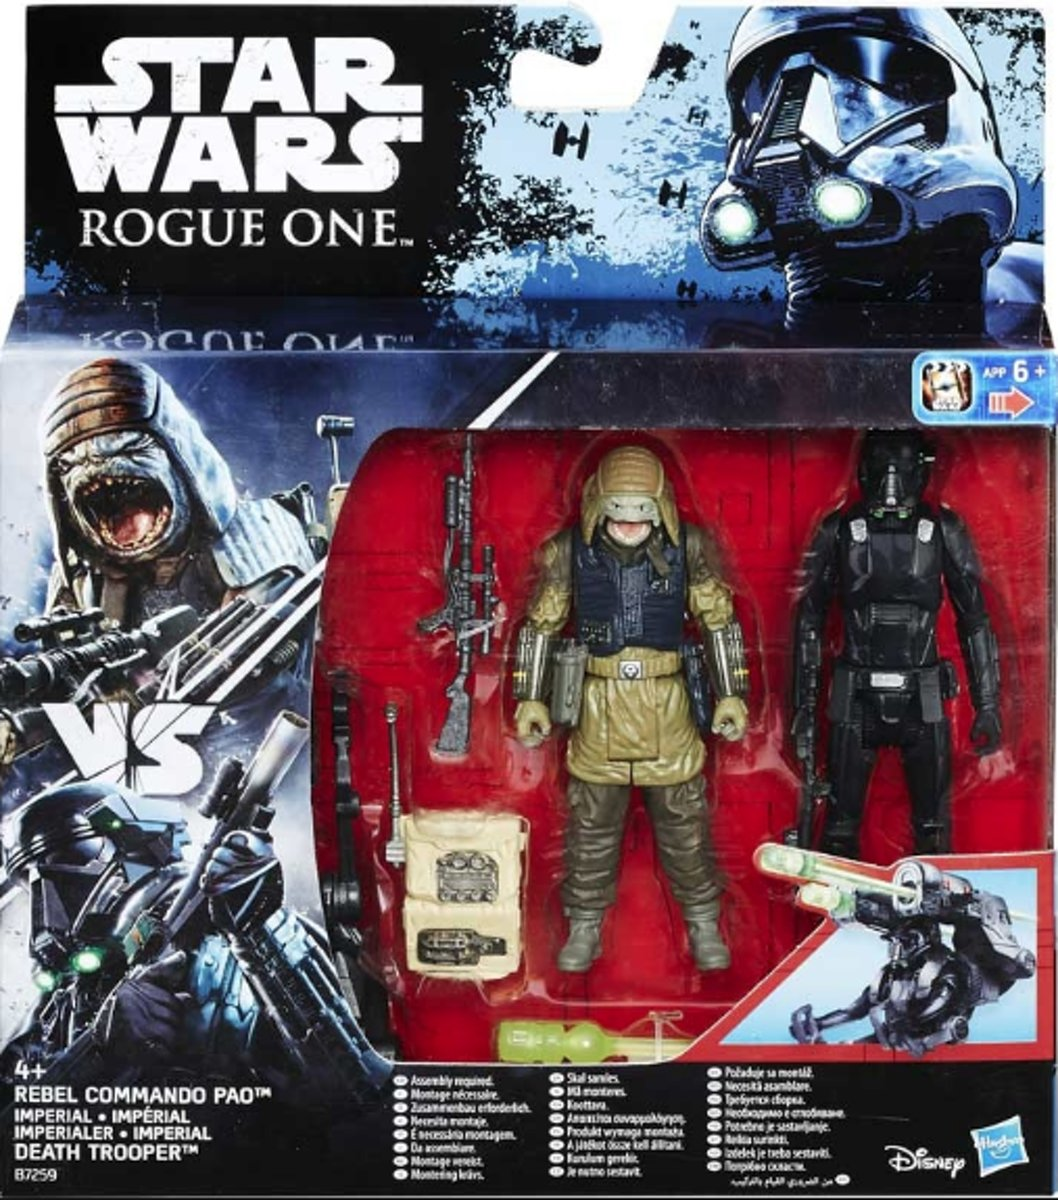 Star Wars Rogue One - Rebel Commando Pao + Death Trooper - Hasbro